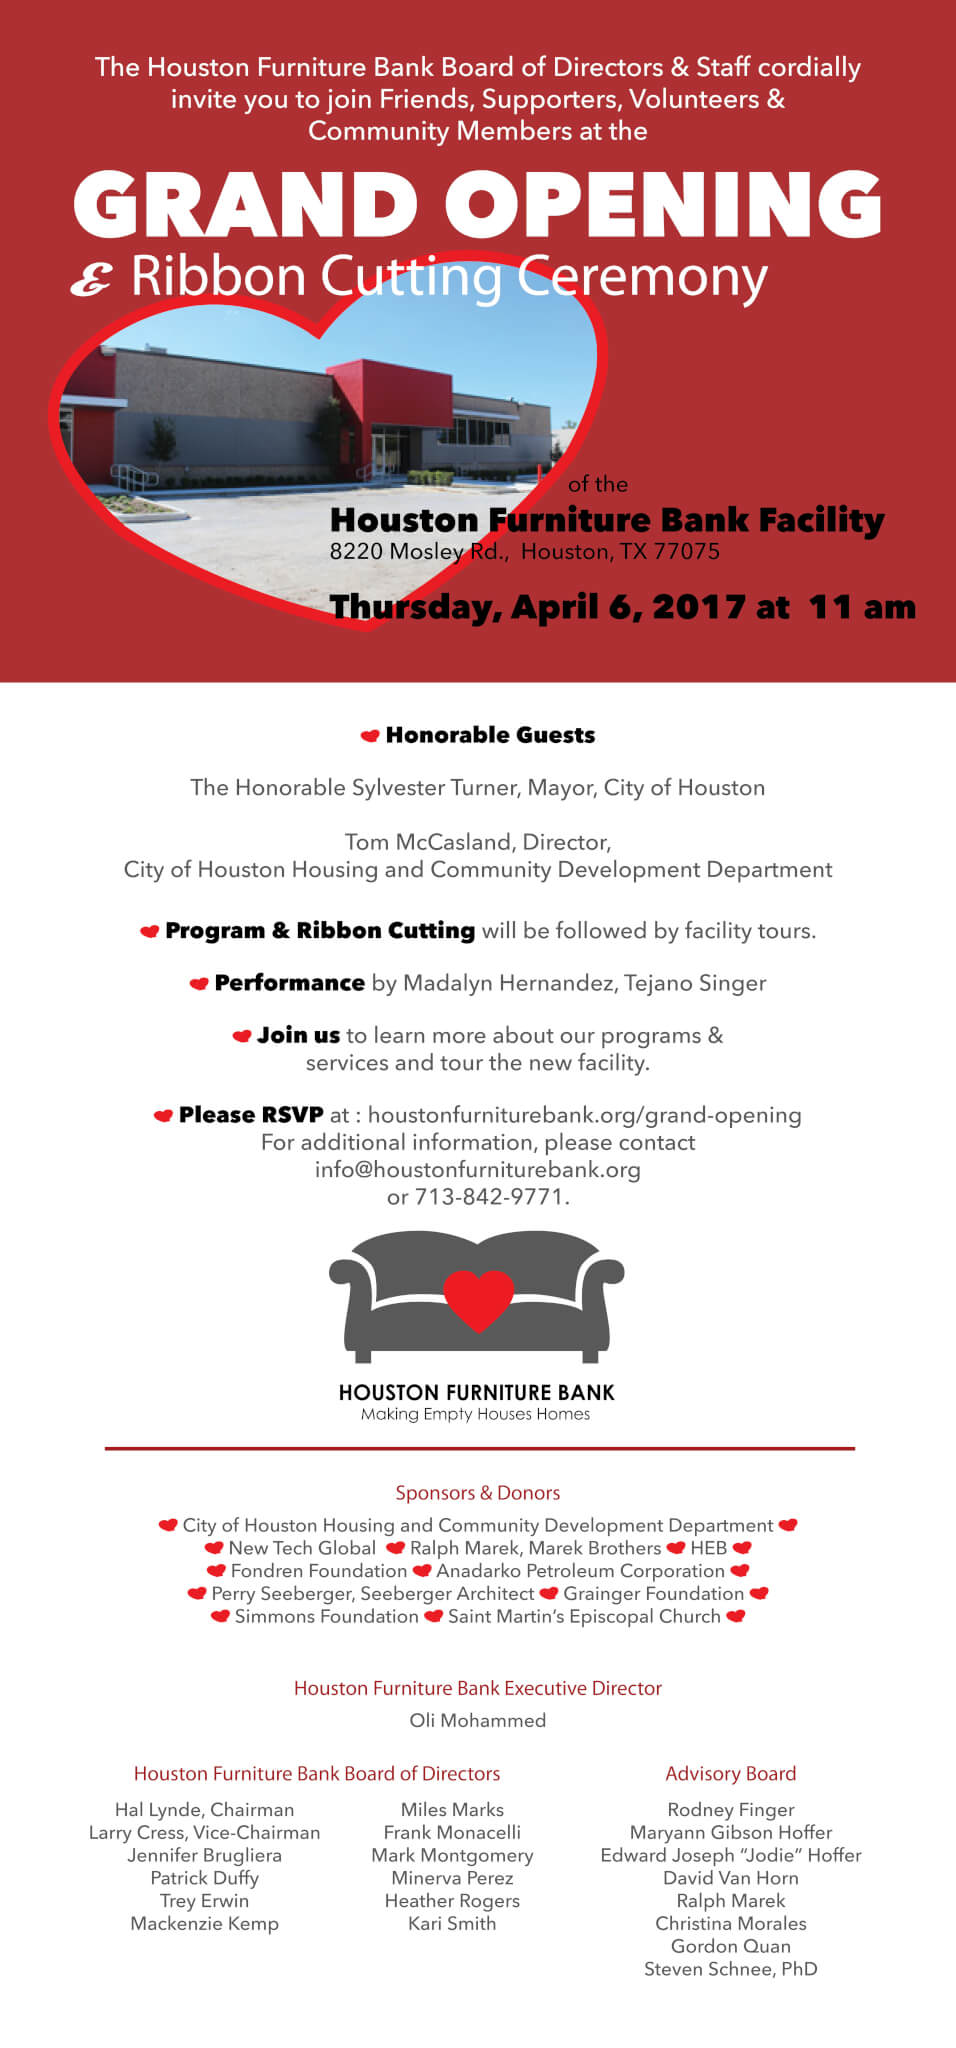 Houston Furniture Bank Grand Opening & Ribbon Cutting Ceremony Invitation